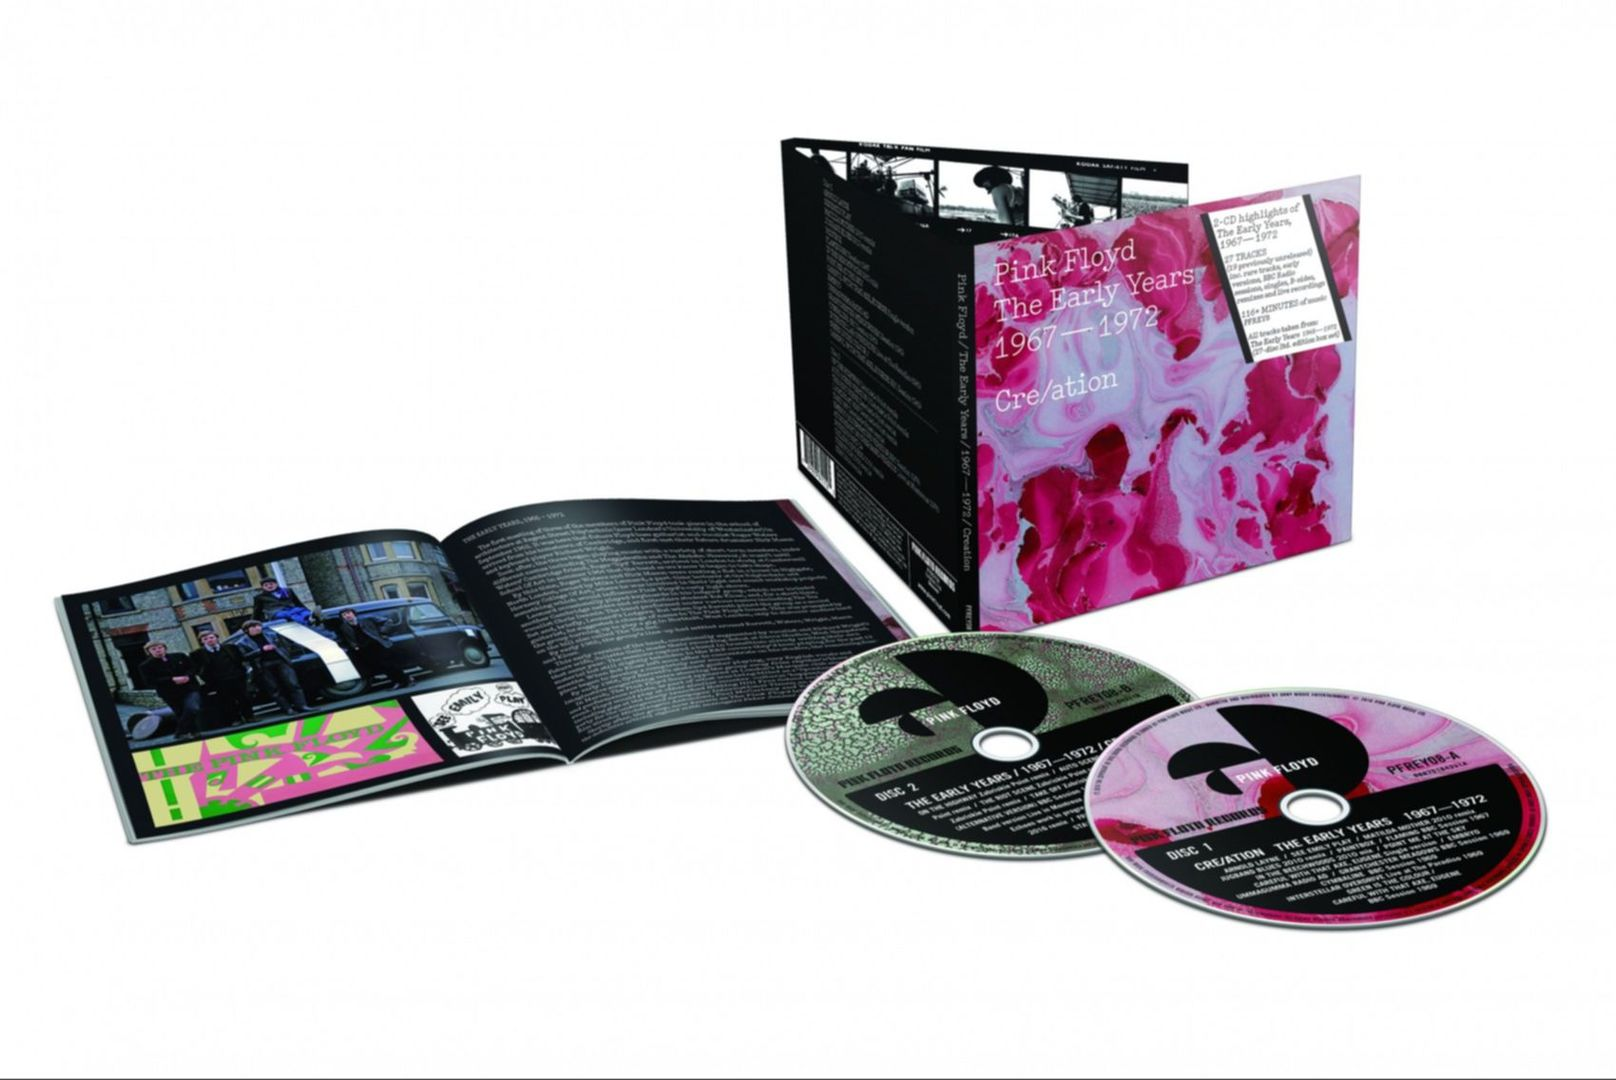 Pink Floyd_TheEarlyYears_2Disc+Sticker_5MB